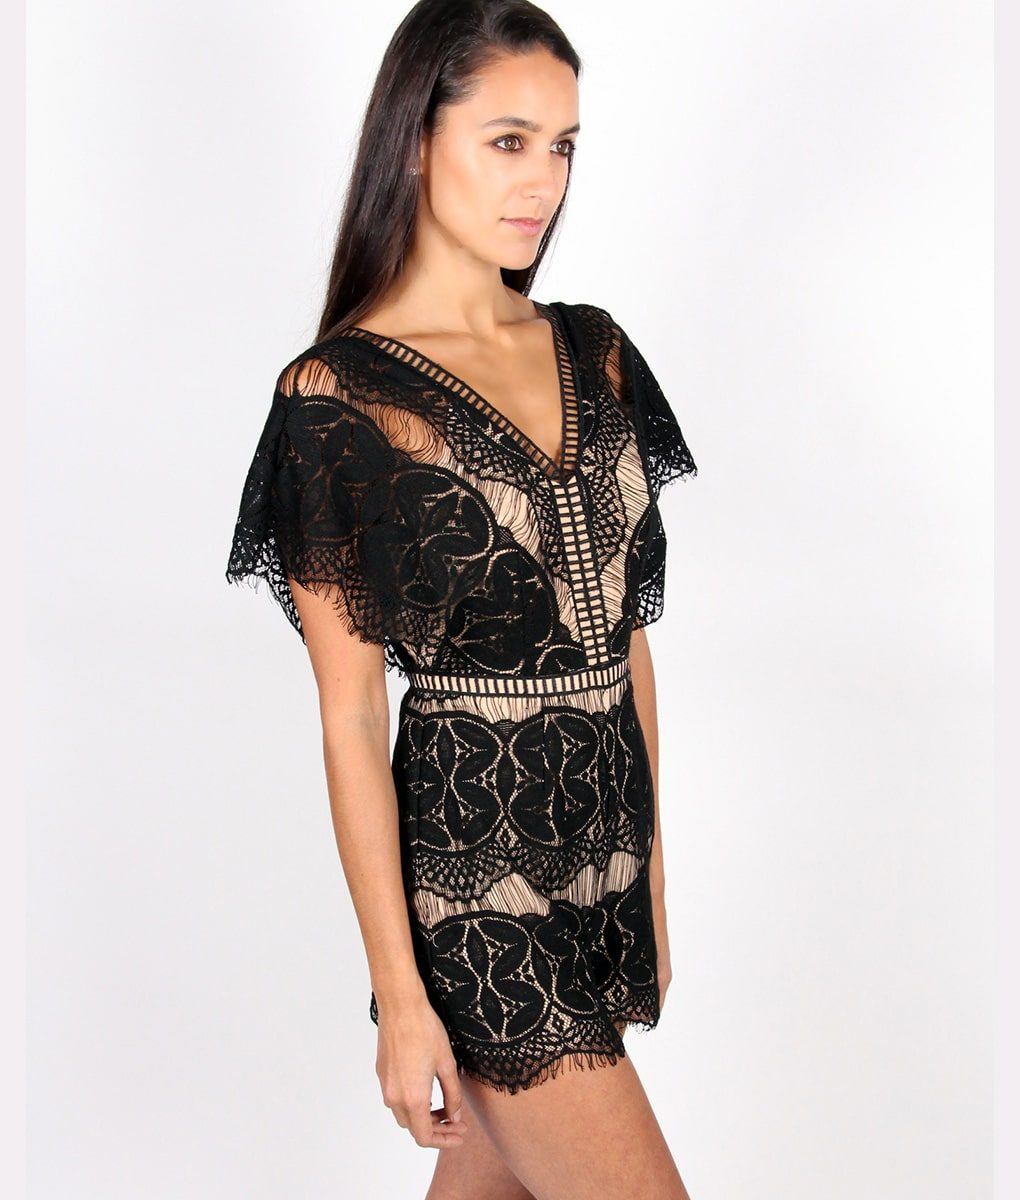 Alila Boutique Black Lace Playsuit.